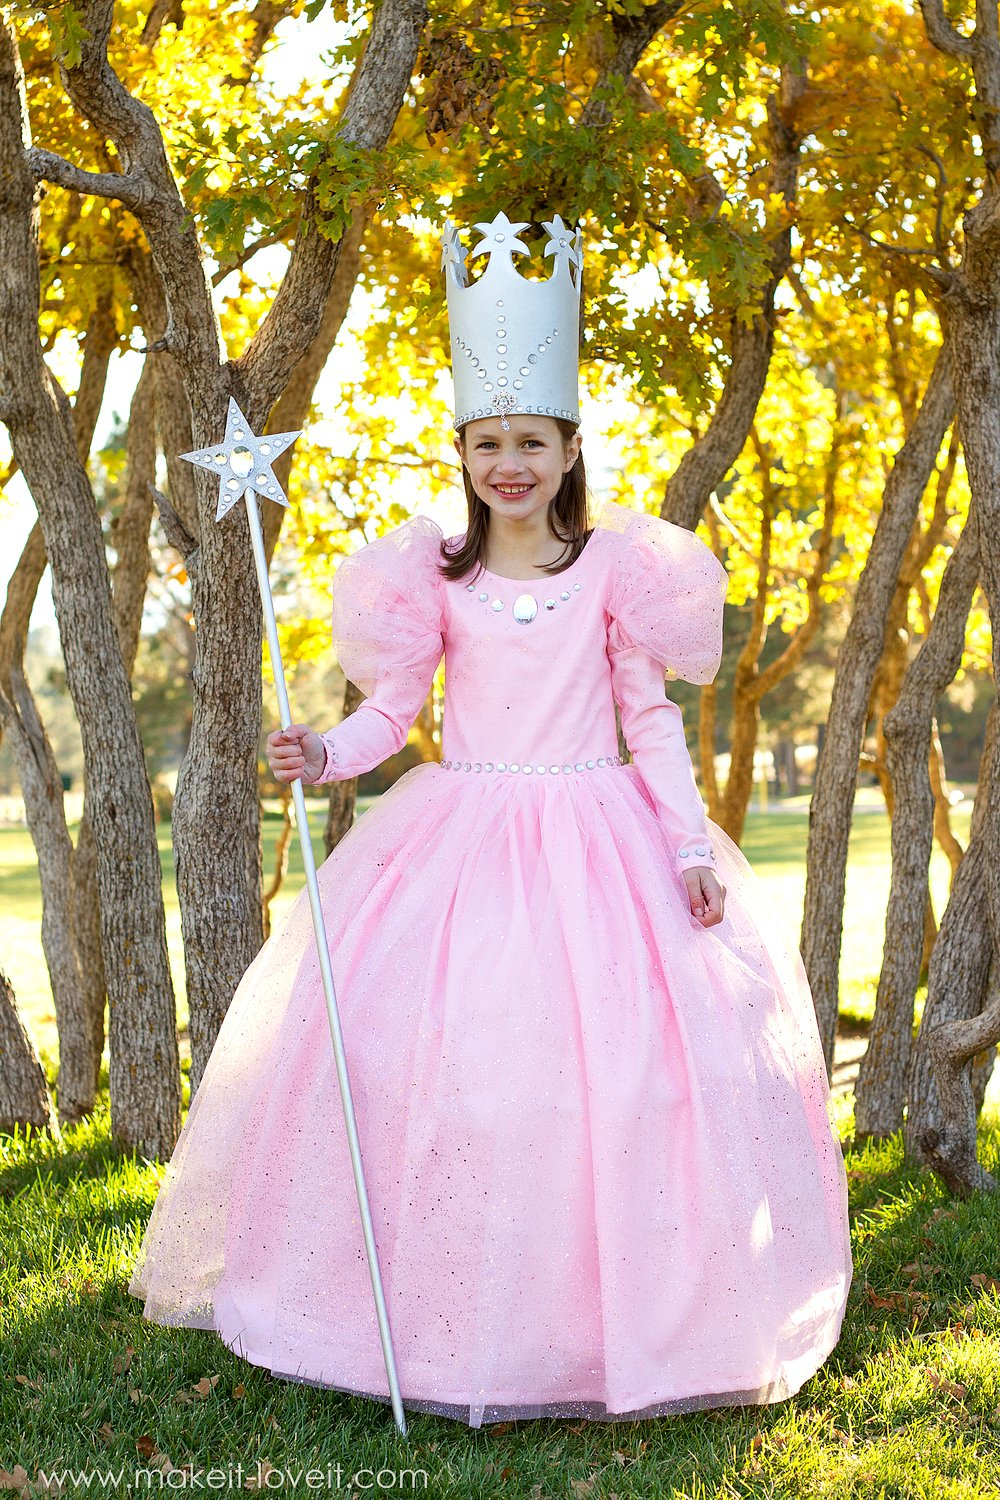 Glinda the Good Witch (from